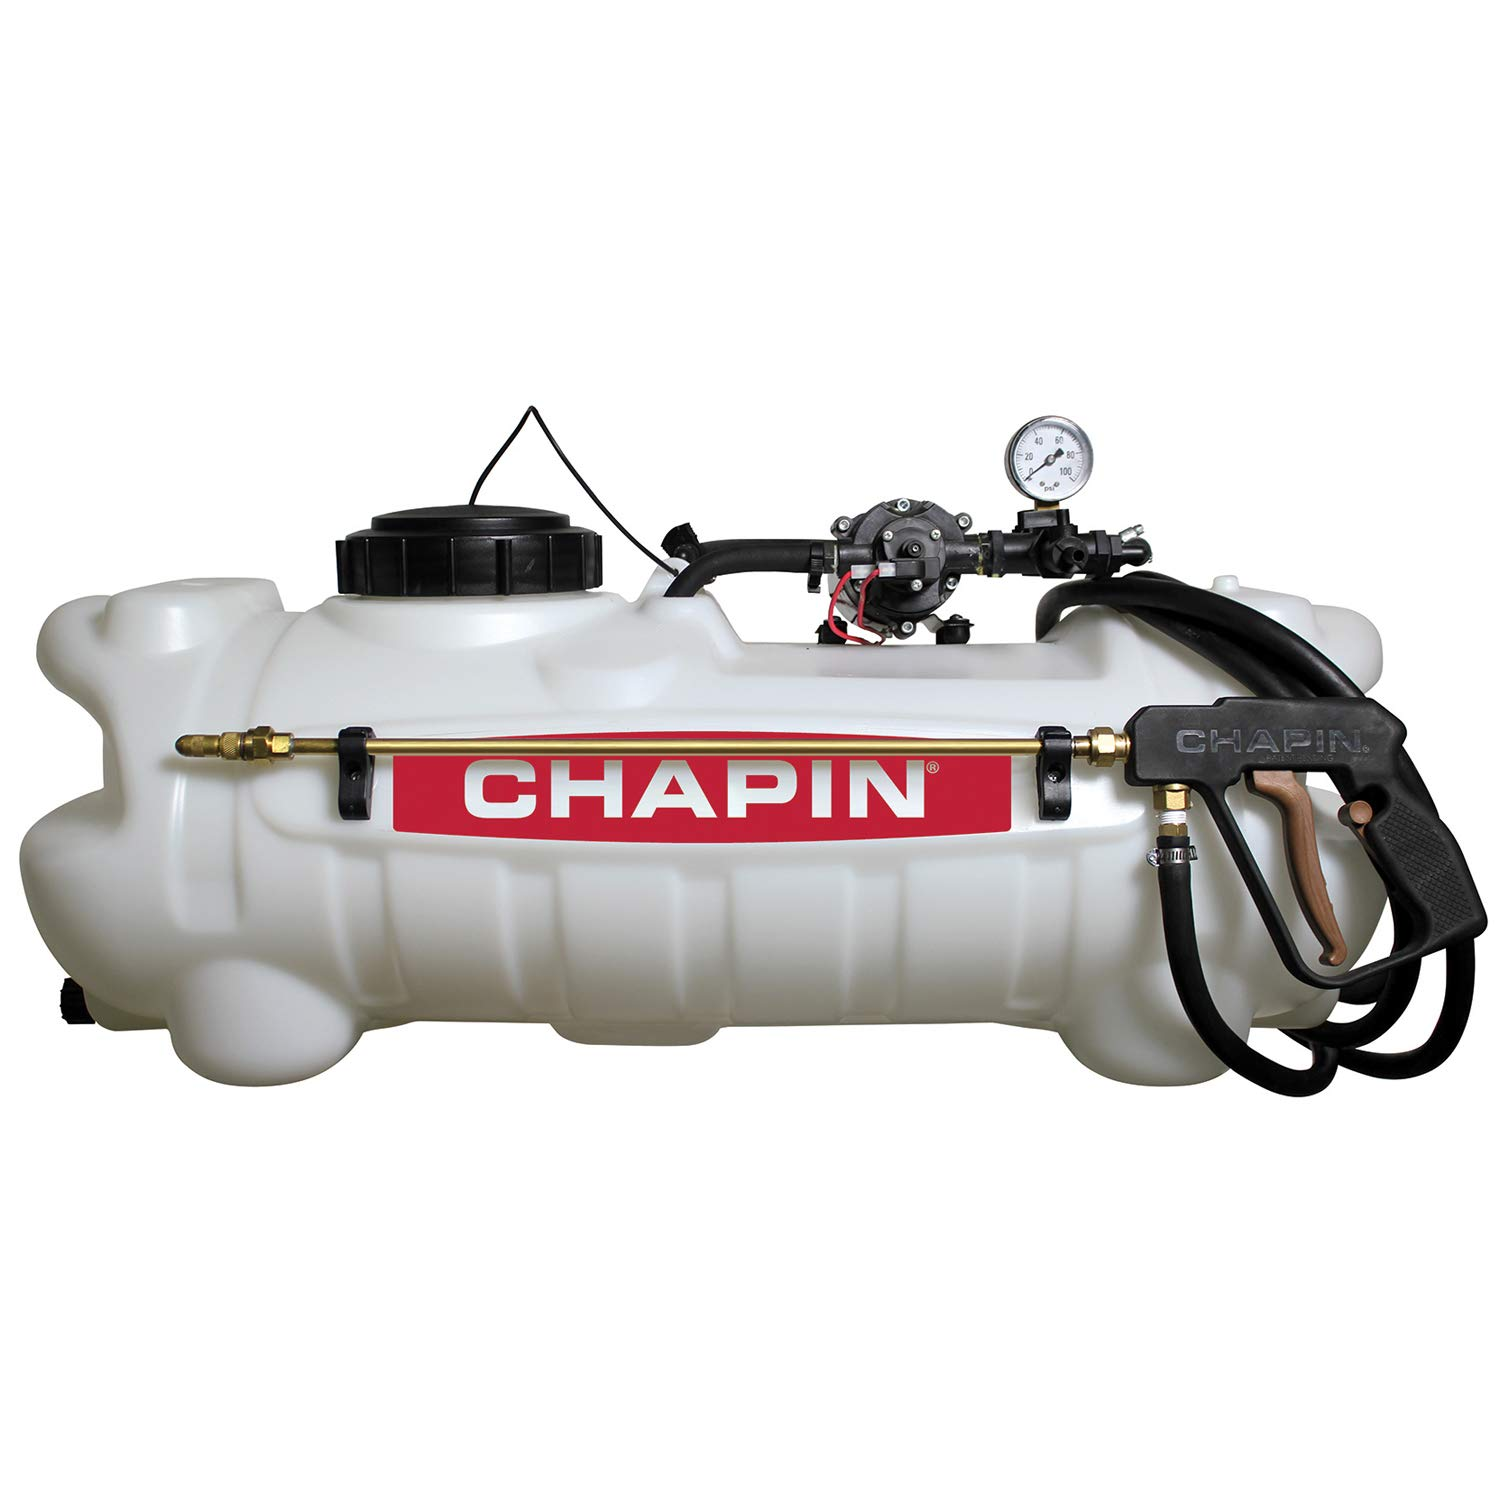 Chapin 97300 15-Gallon 12v Deluxe Dripless EZ mount ATV Spot Sprayer